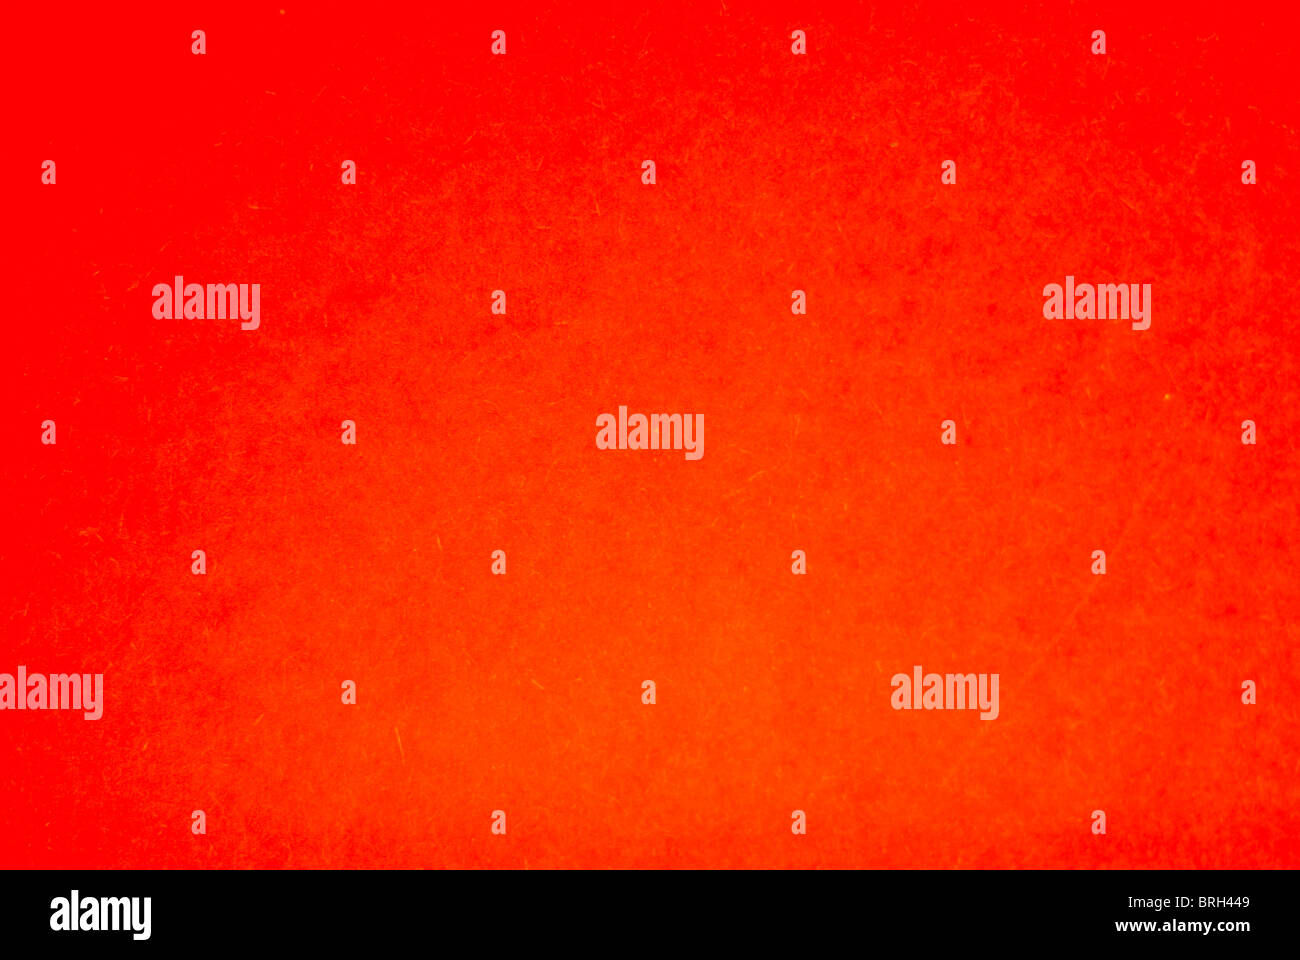 Textured Red background shot close-up on lightbox - Stock Image